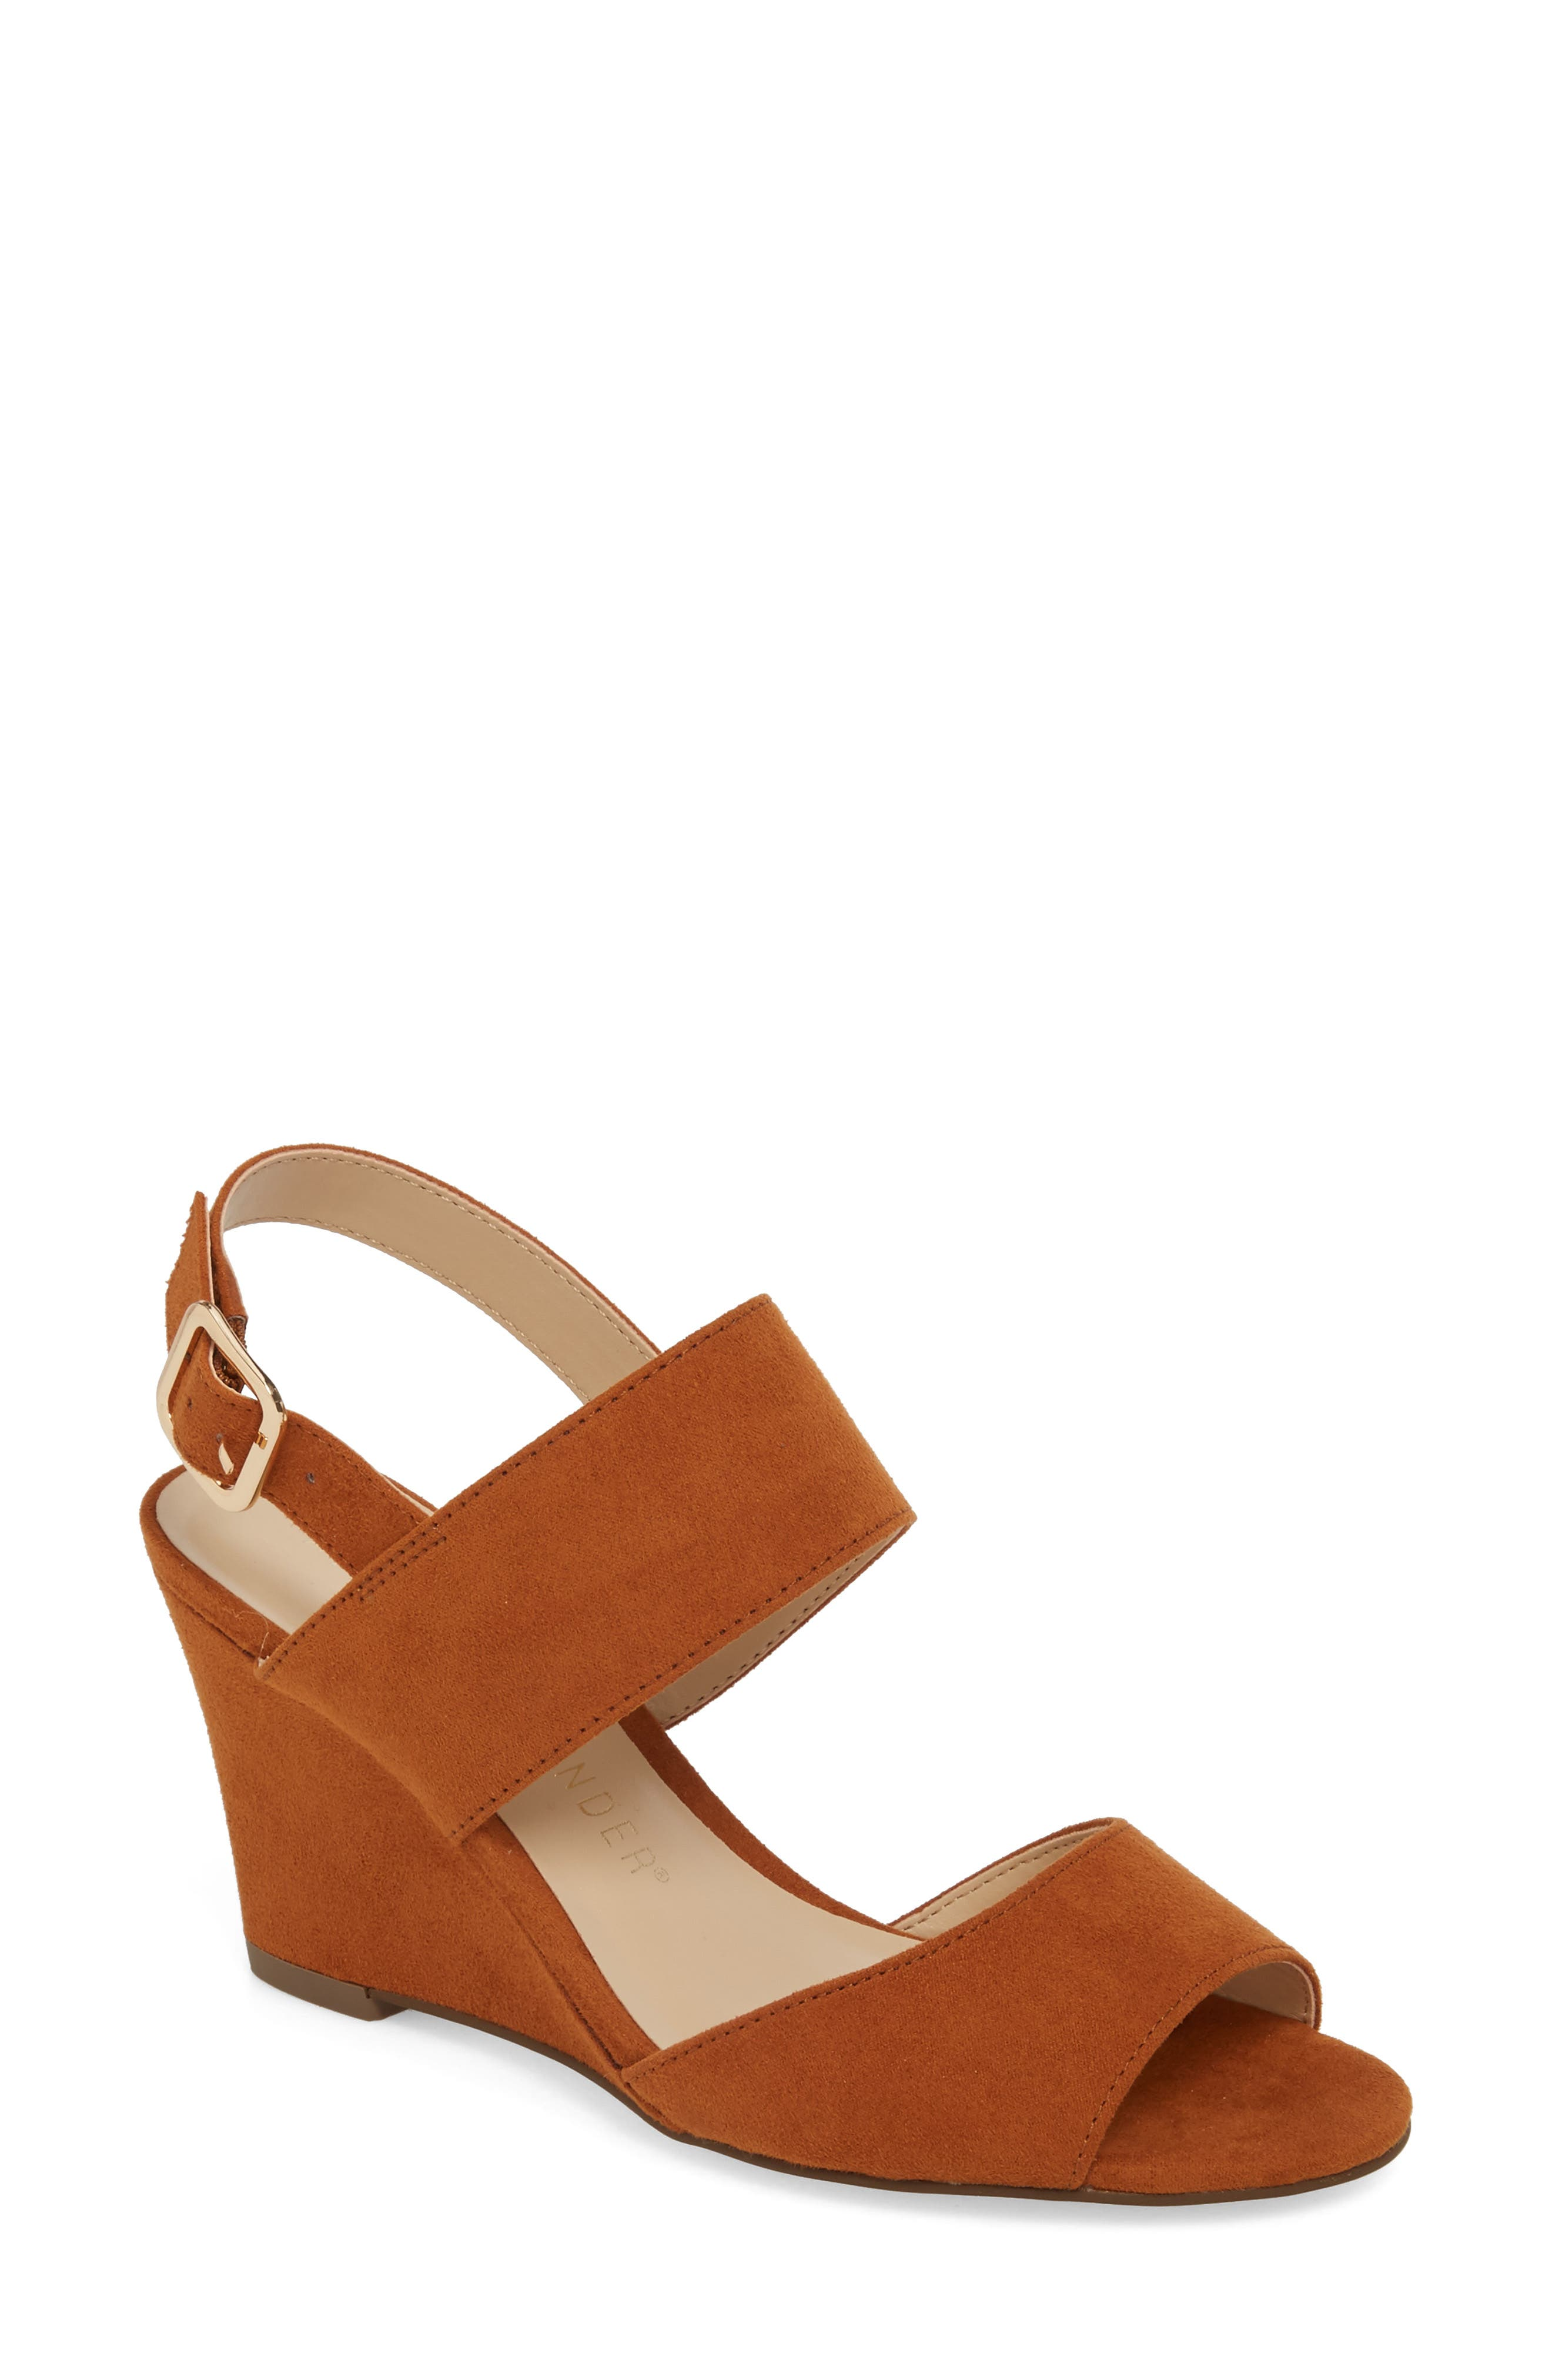 Athena Alexander Slayte Wedge Sandal (Women)